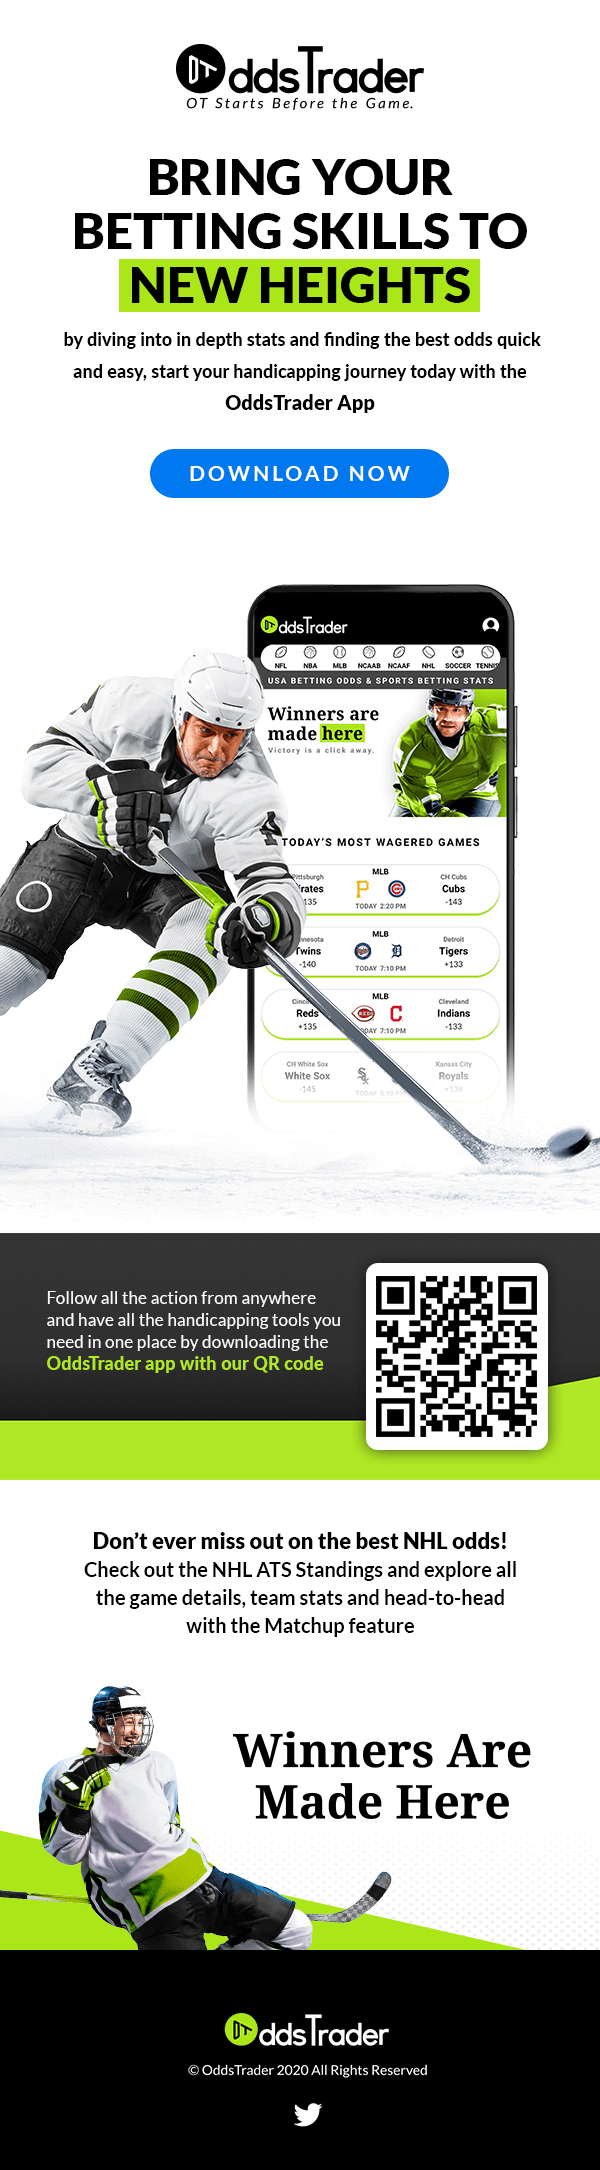 THE SPORTS BETTING NETWORK